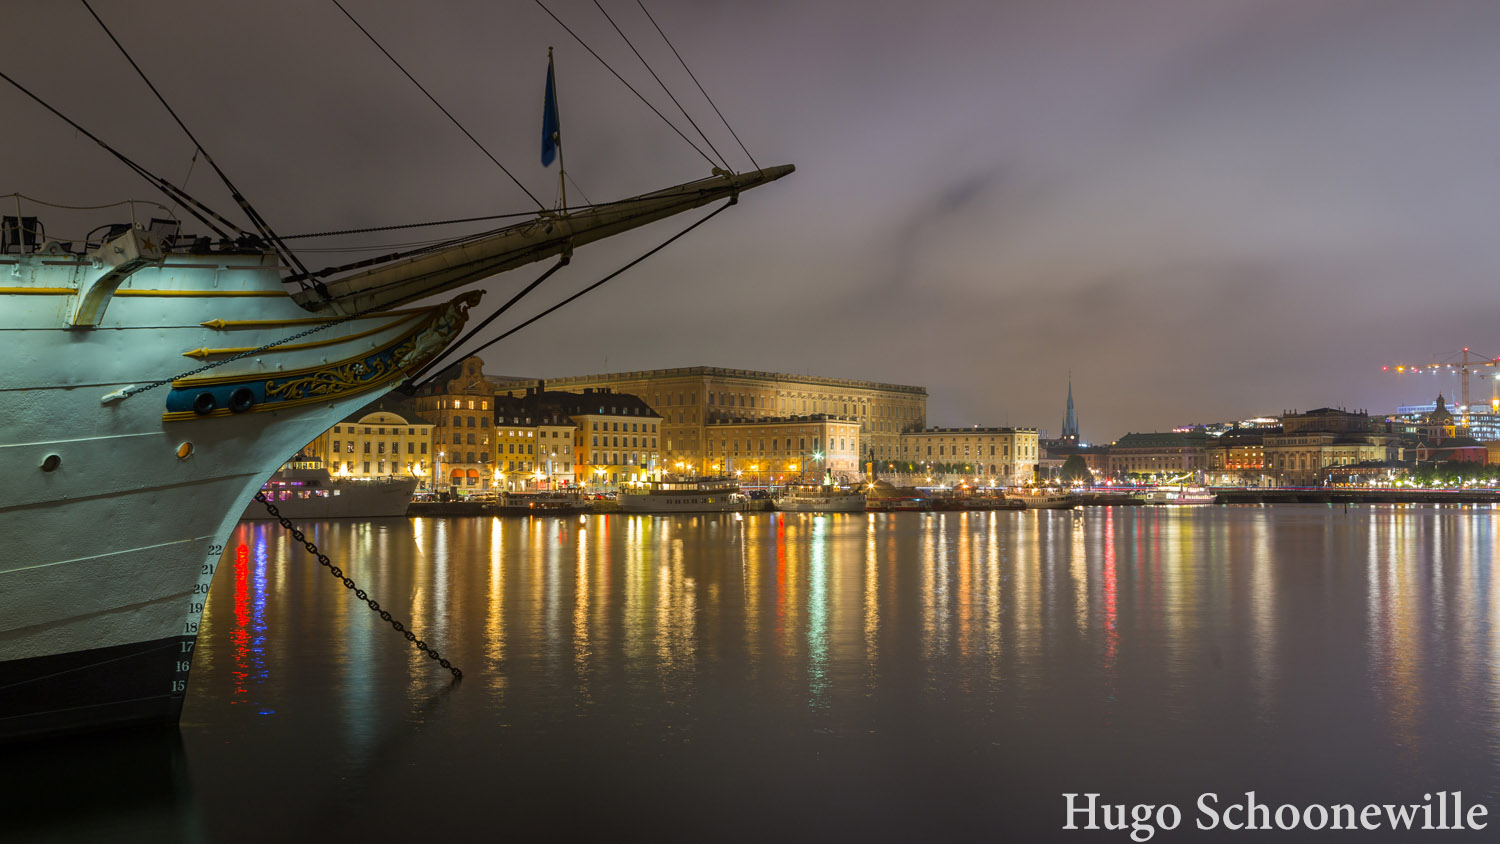 Stockholm by night: uitzicht over het water en het paleis